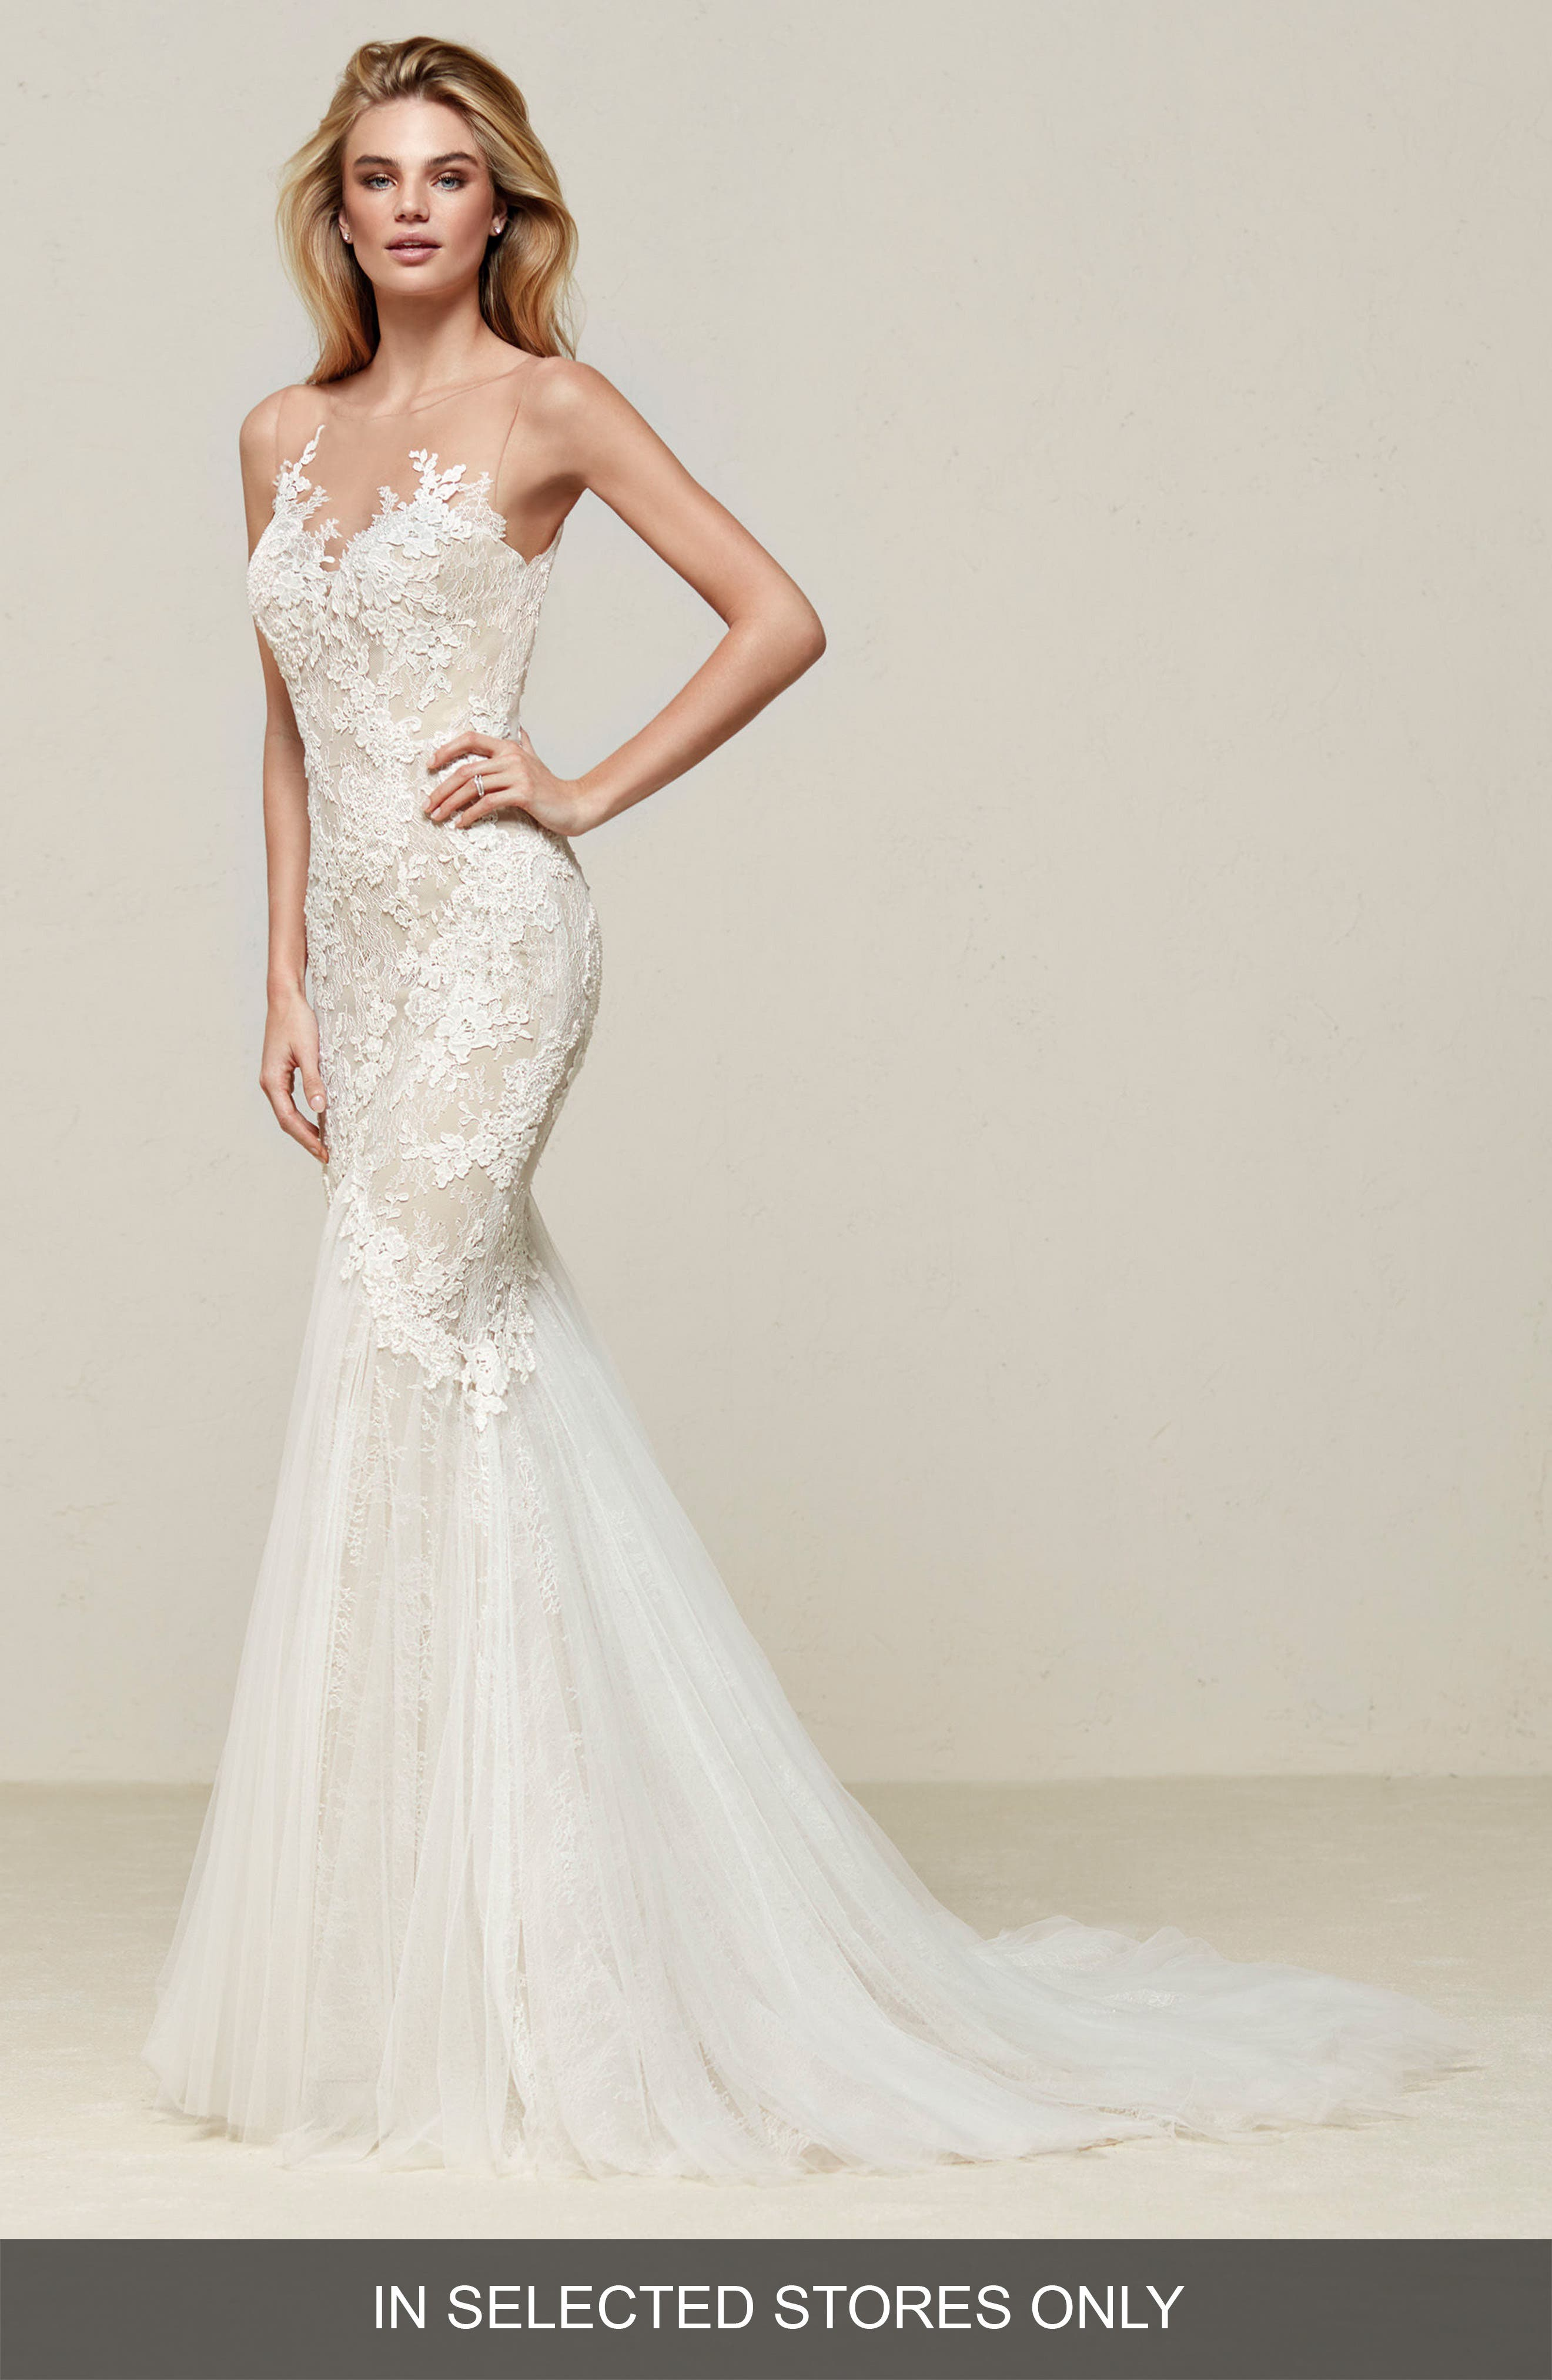 Drinam Beaded Lace & Tulle Mermaid Gown,                         Main,                         color, OFF WHITE